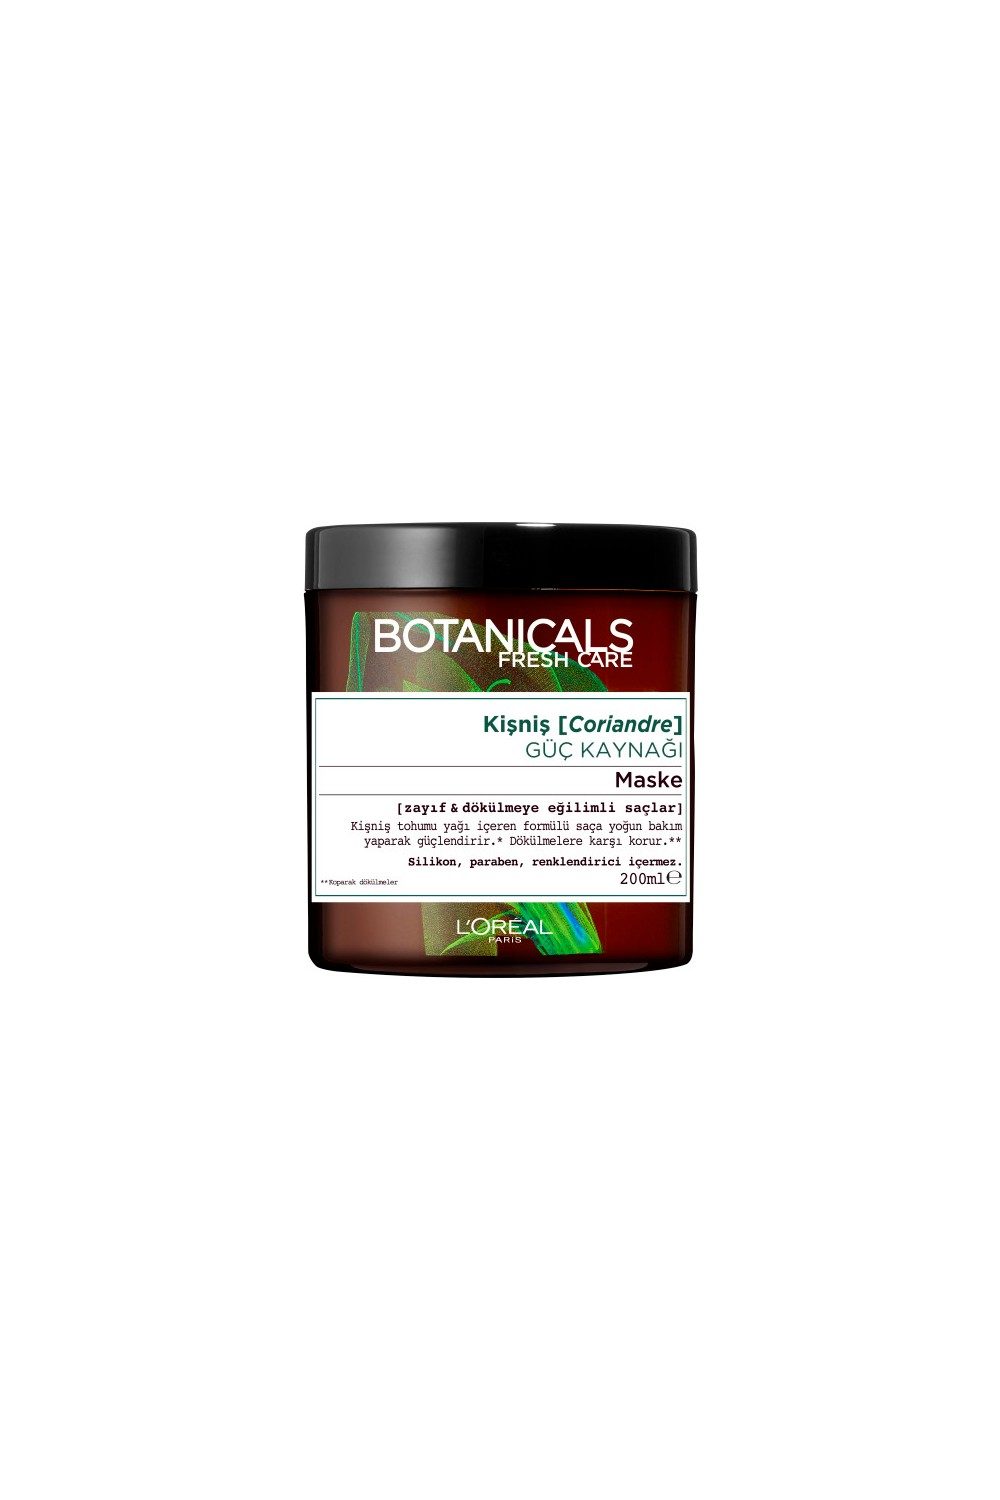 Botanicals Fresh Care Coriander Power Mask